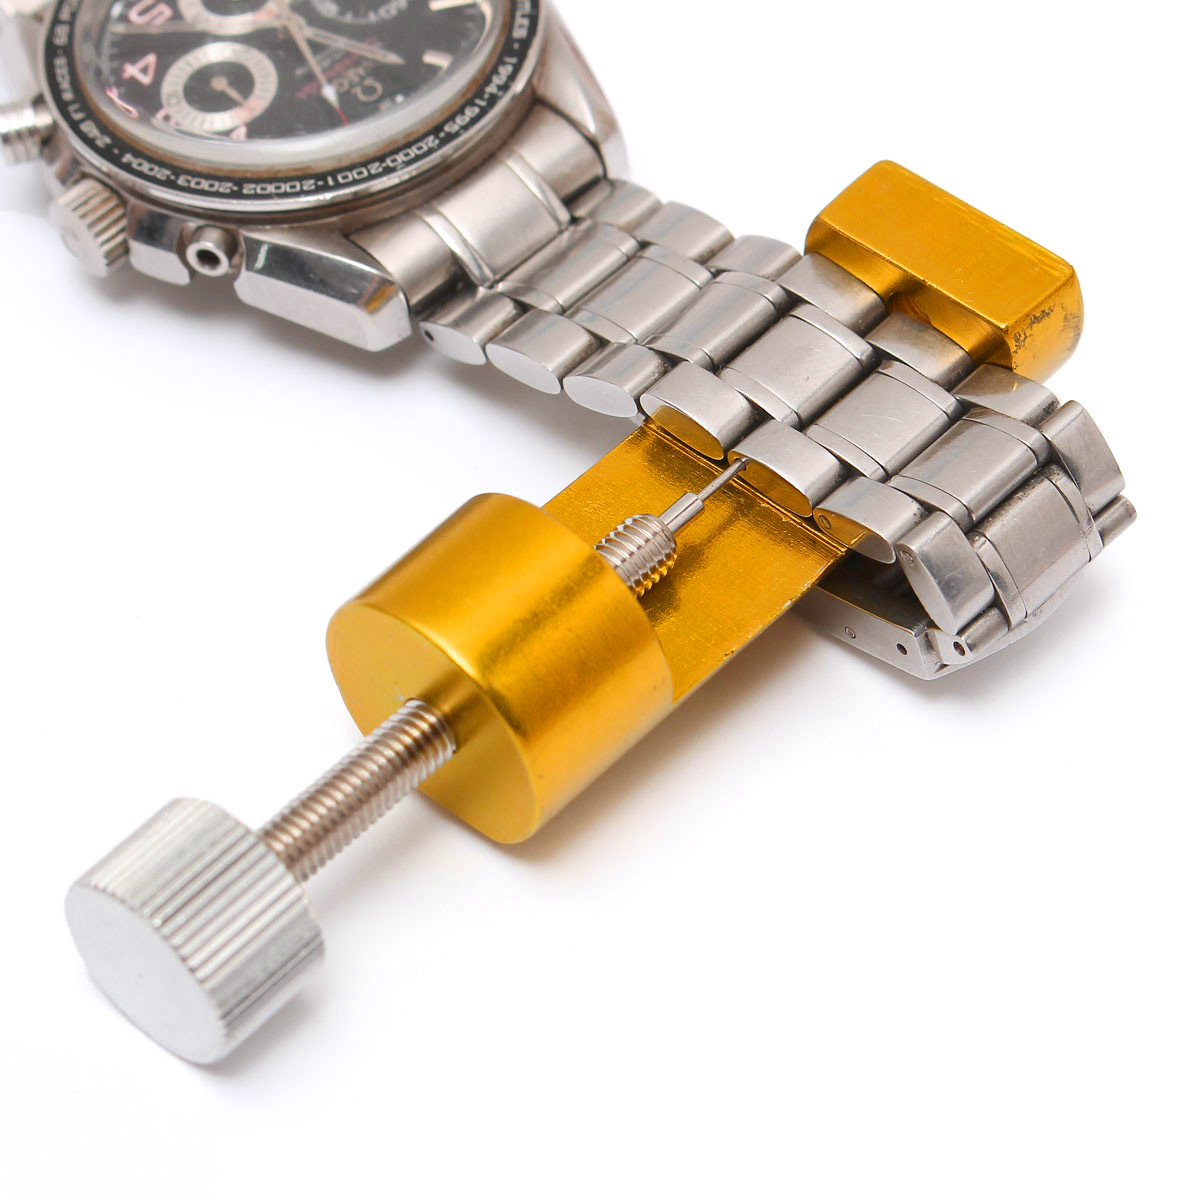 Metal Watch Tools Adjusting Watch Strap Tool With Watch Pin Band Bracelet Link Pin Tool Remover WatchMaker Ferramenta Relogio